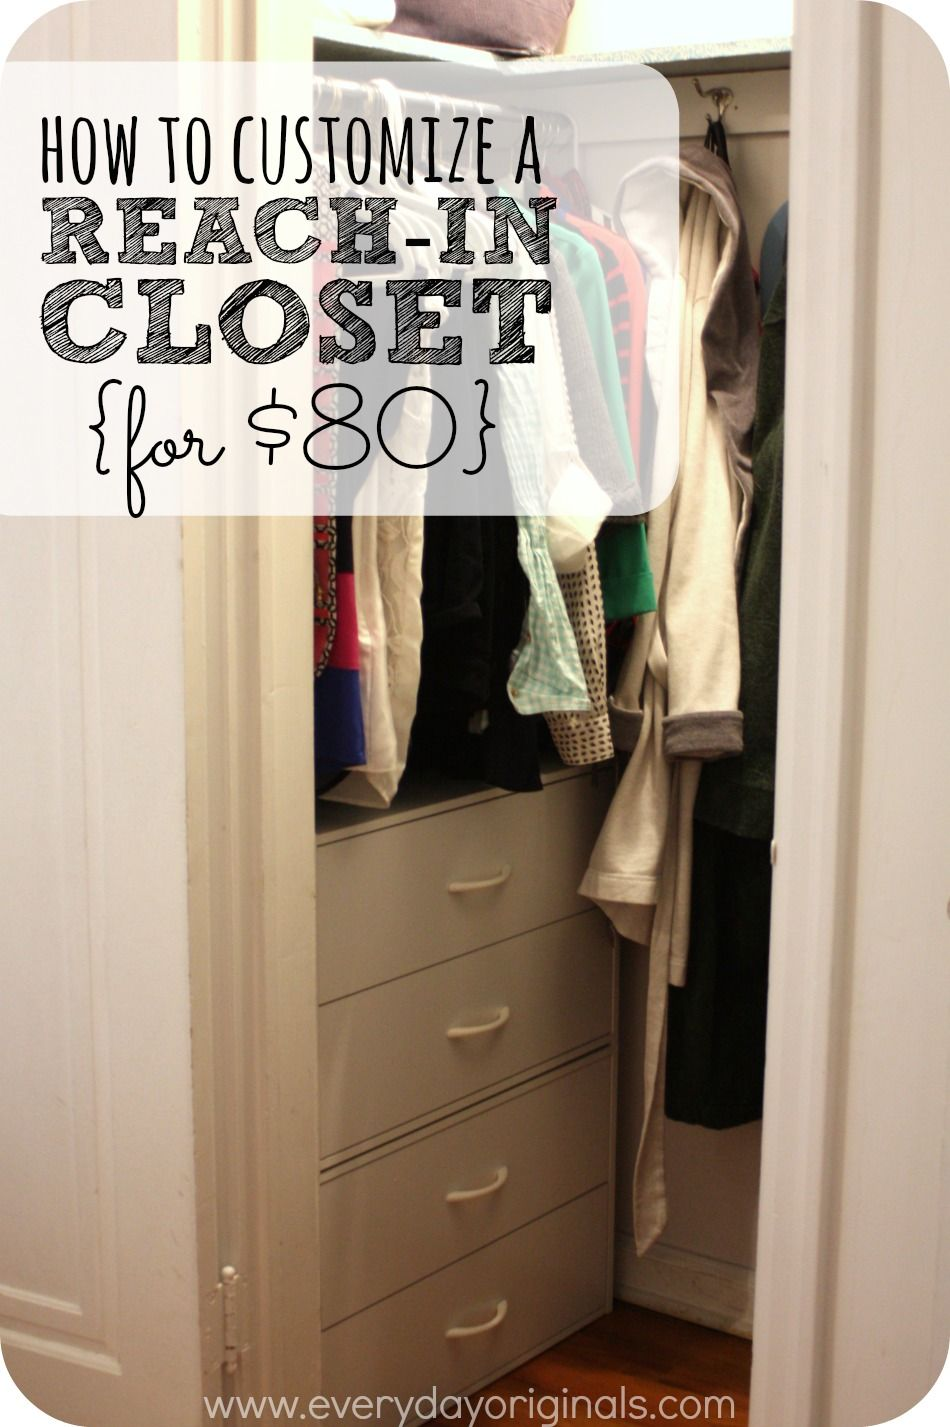 How To Customize A Reach In Closet For 80 Small Deep Closet Deep Closet Small Closet Organization